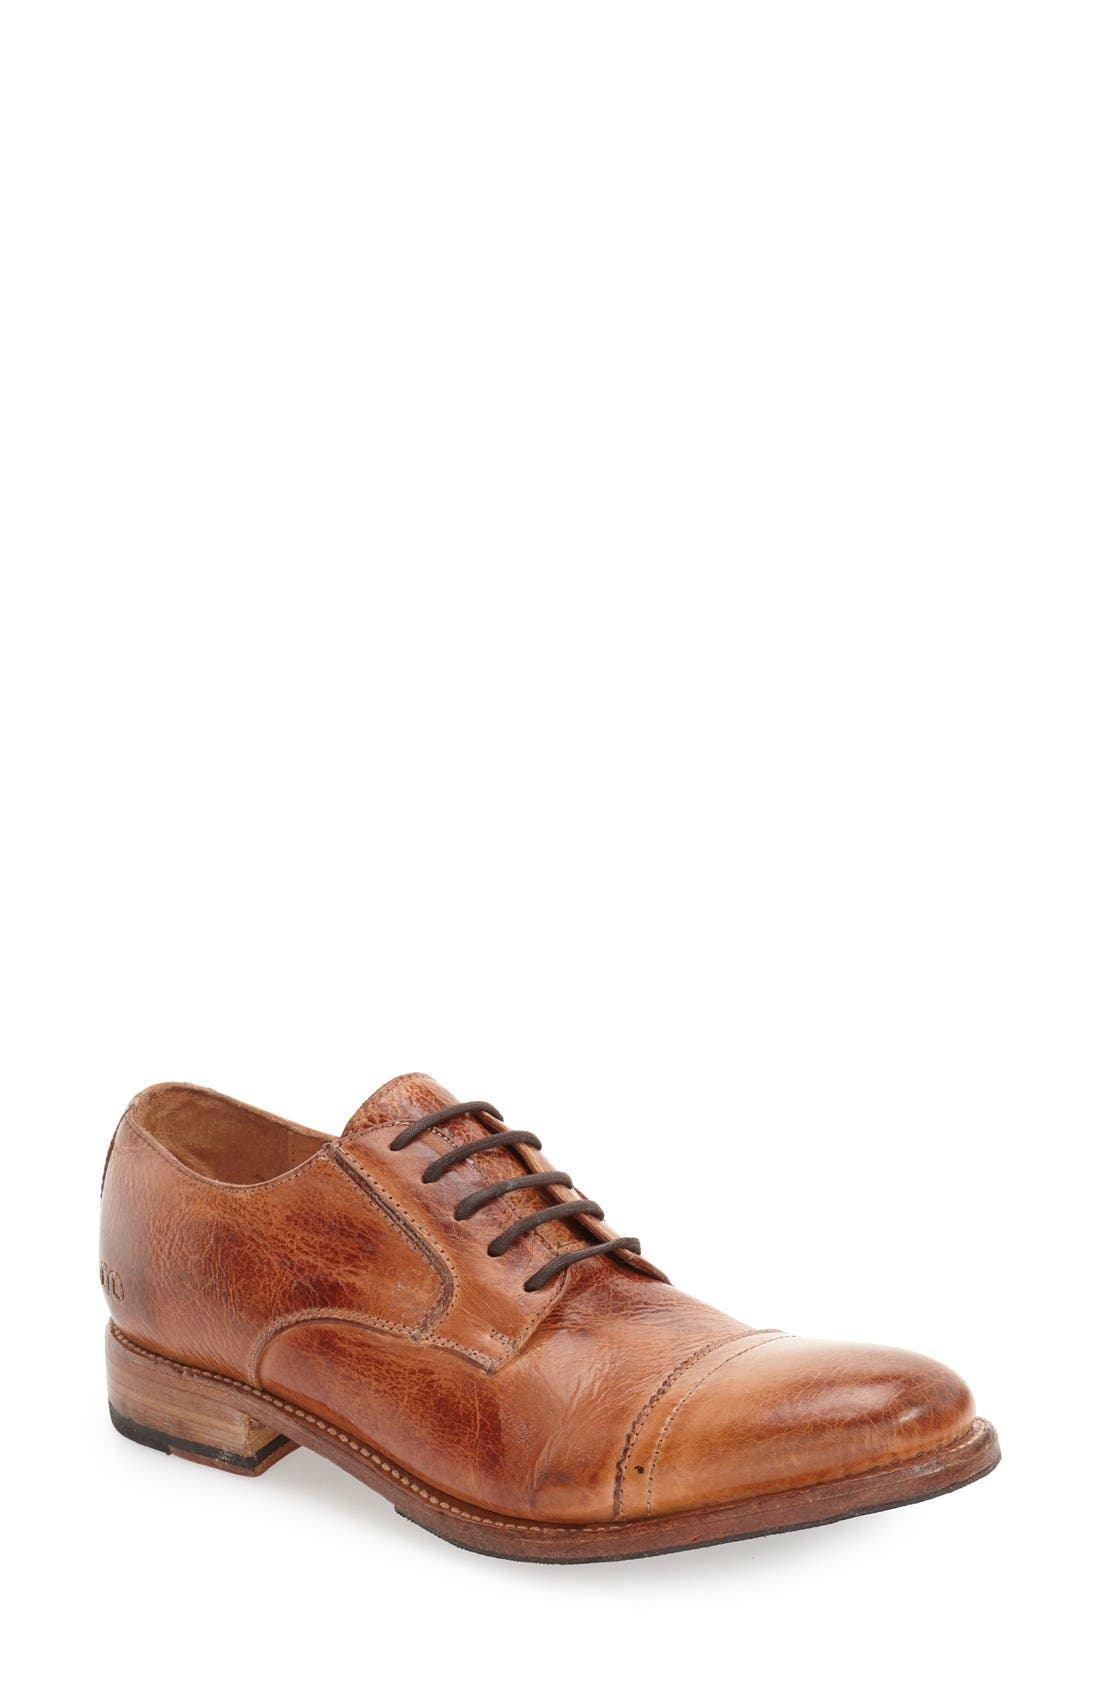 'Diorite' Cap Toe Derby,                             Main thumbnail 1, color,                             Cognac Leather